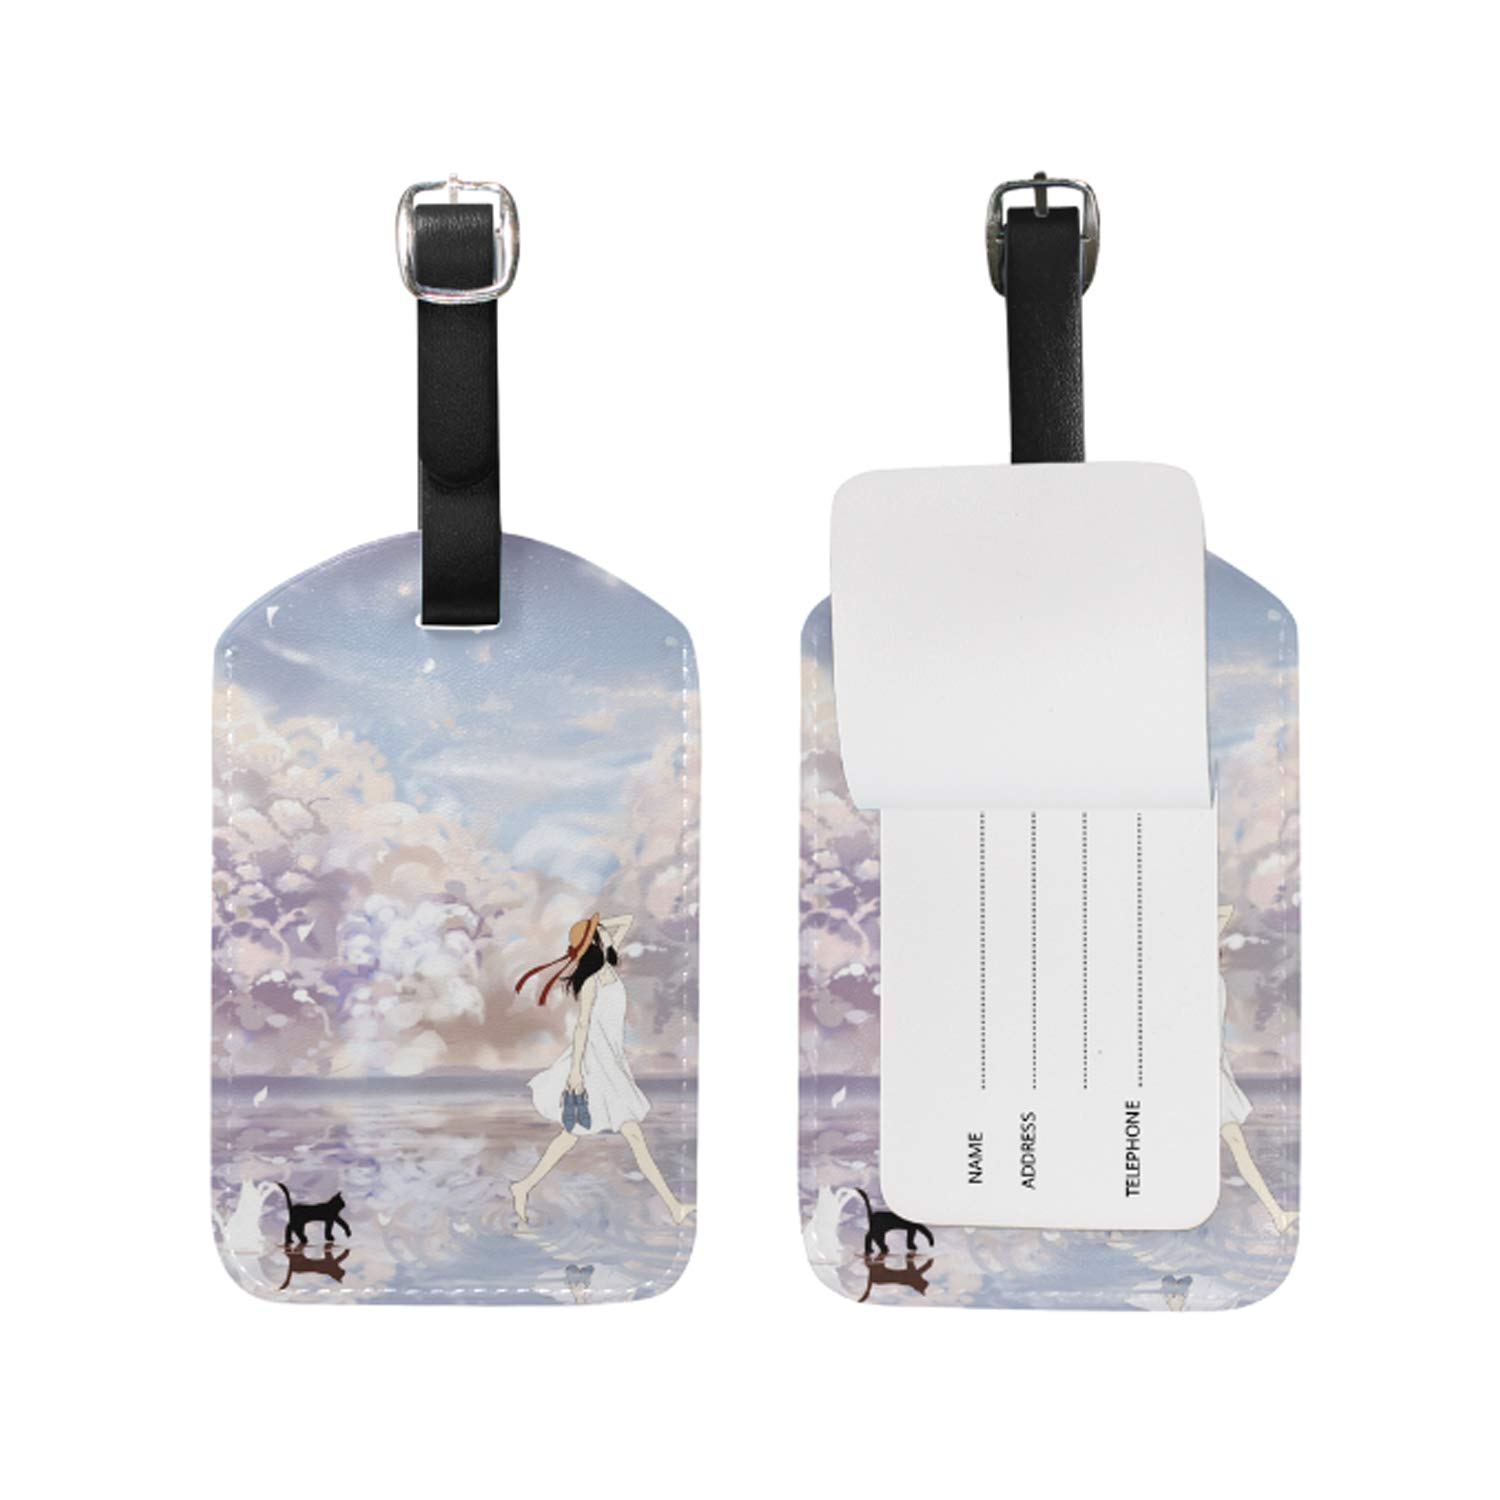 Dragonfly And Damselfly Print Luggage Identifiers with Strap Closure